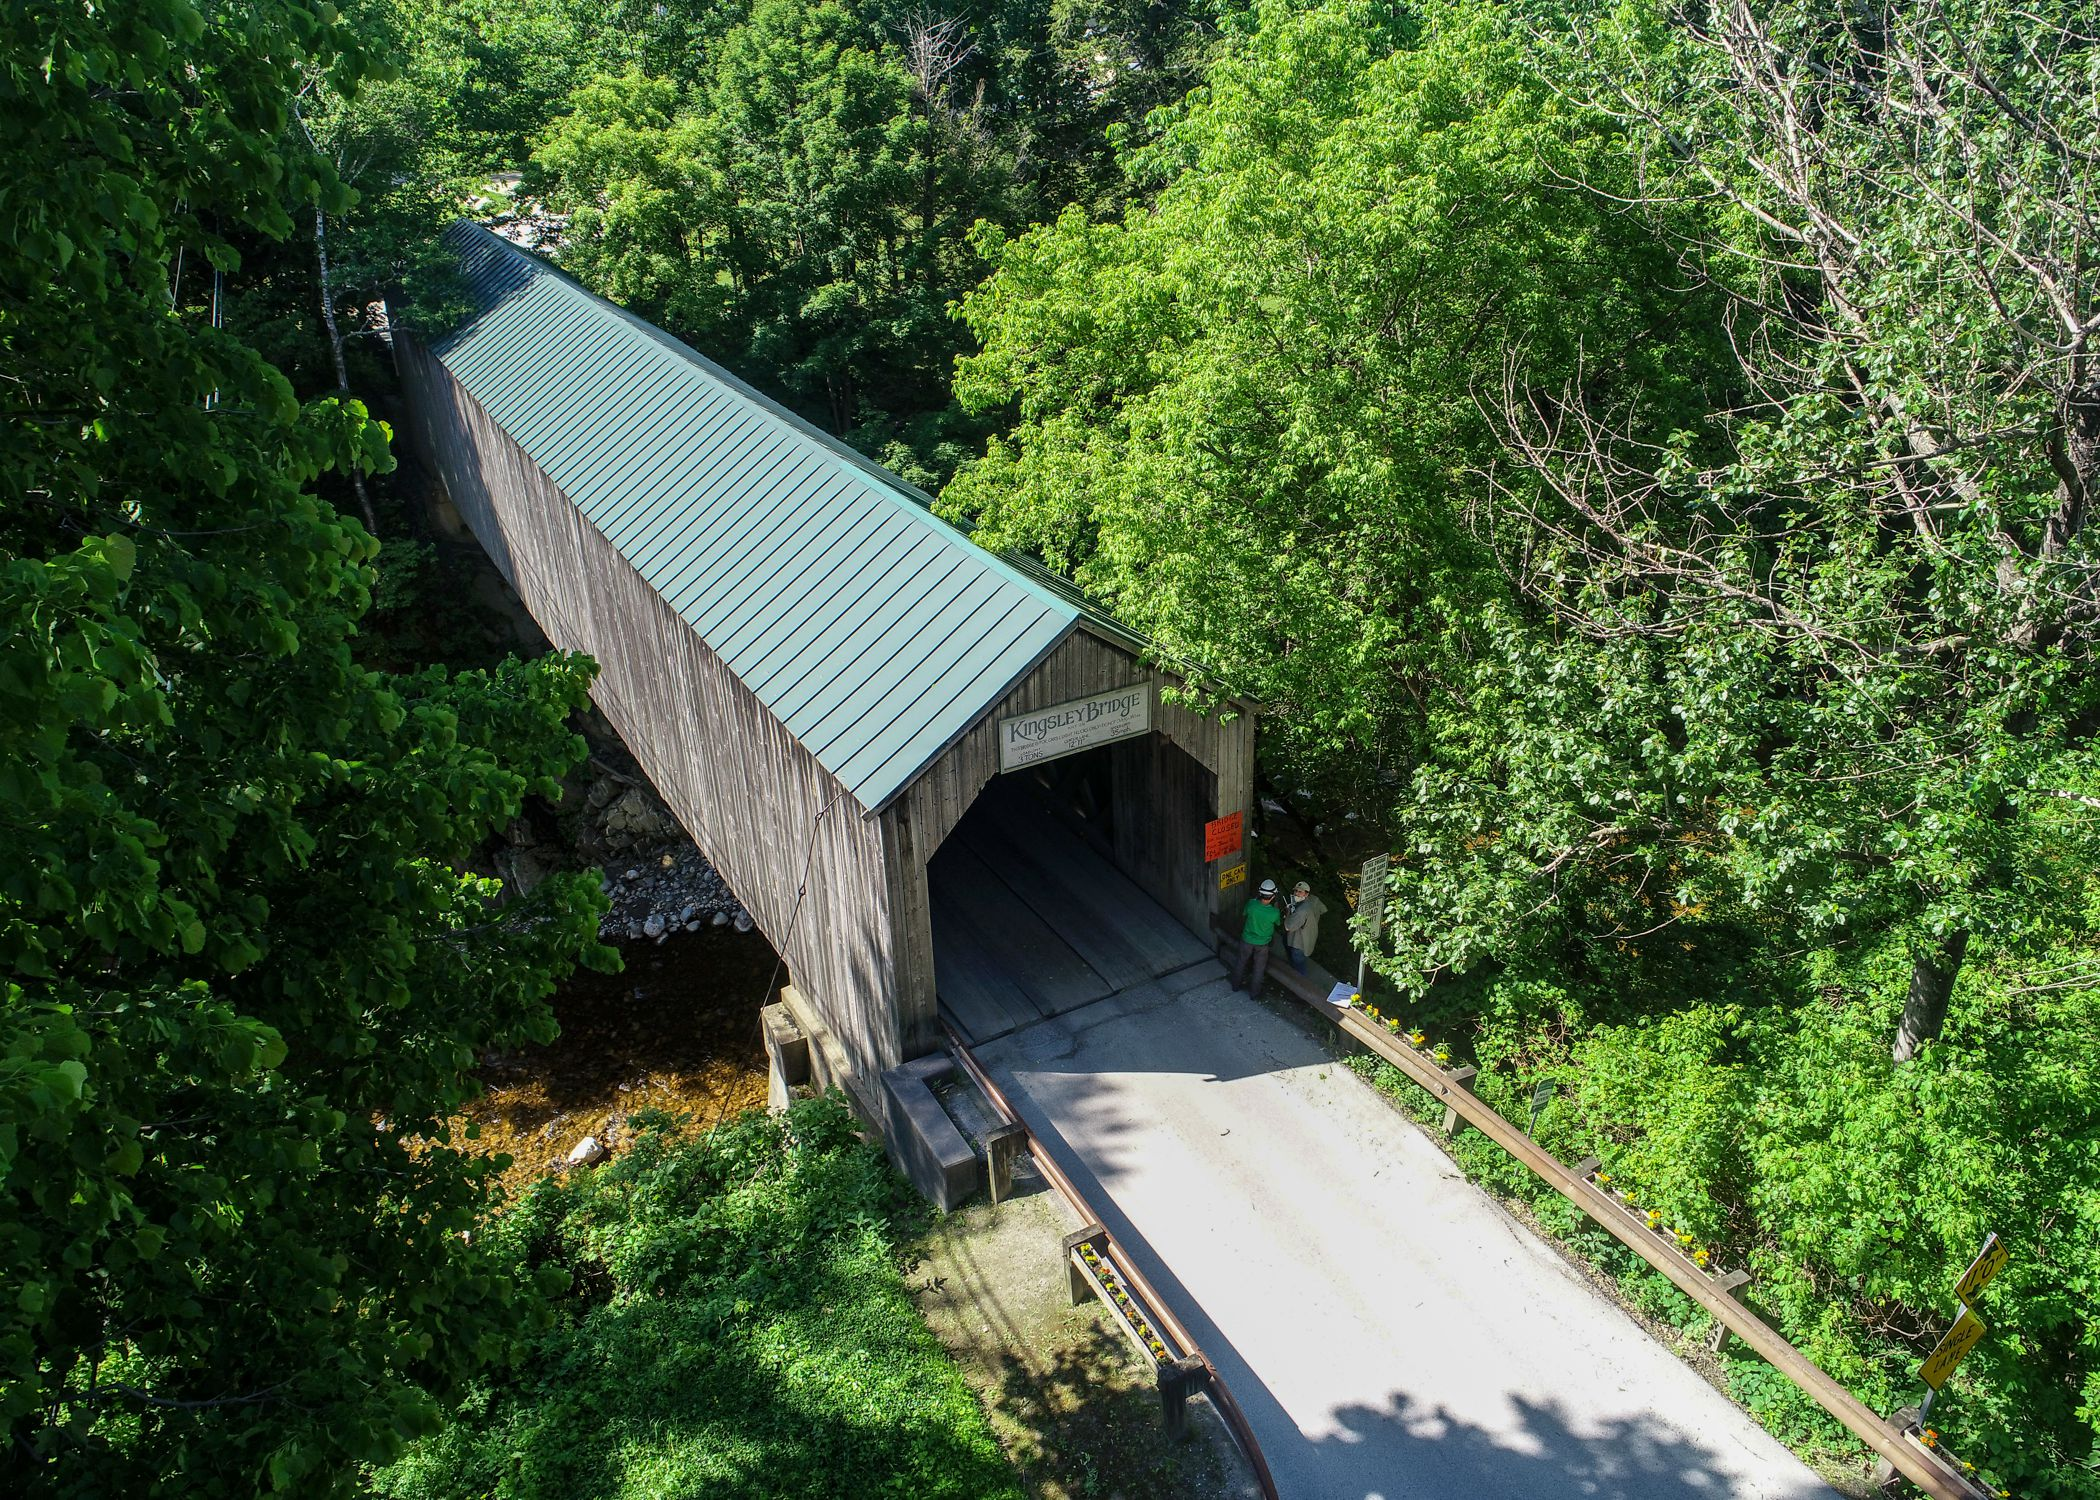 Drone image of Kingsley Covered Bridge